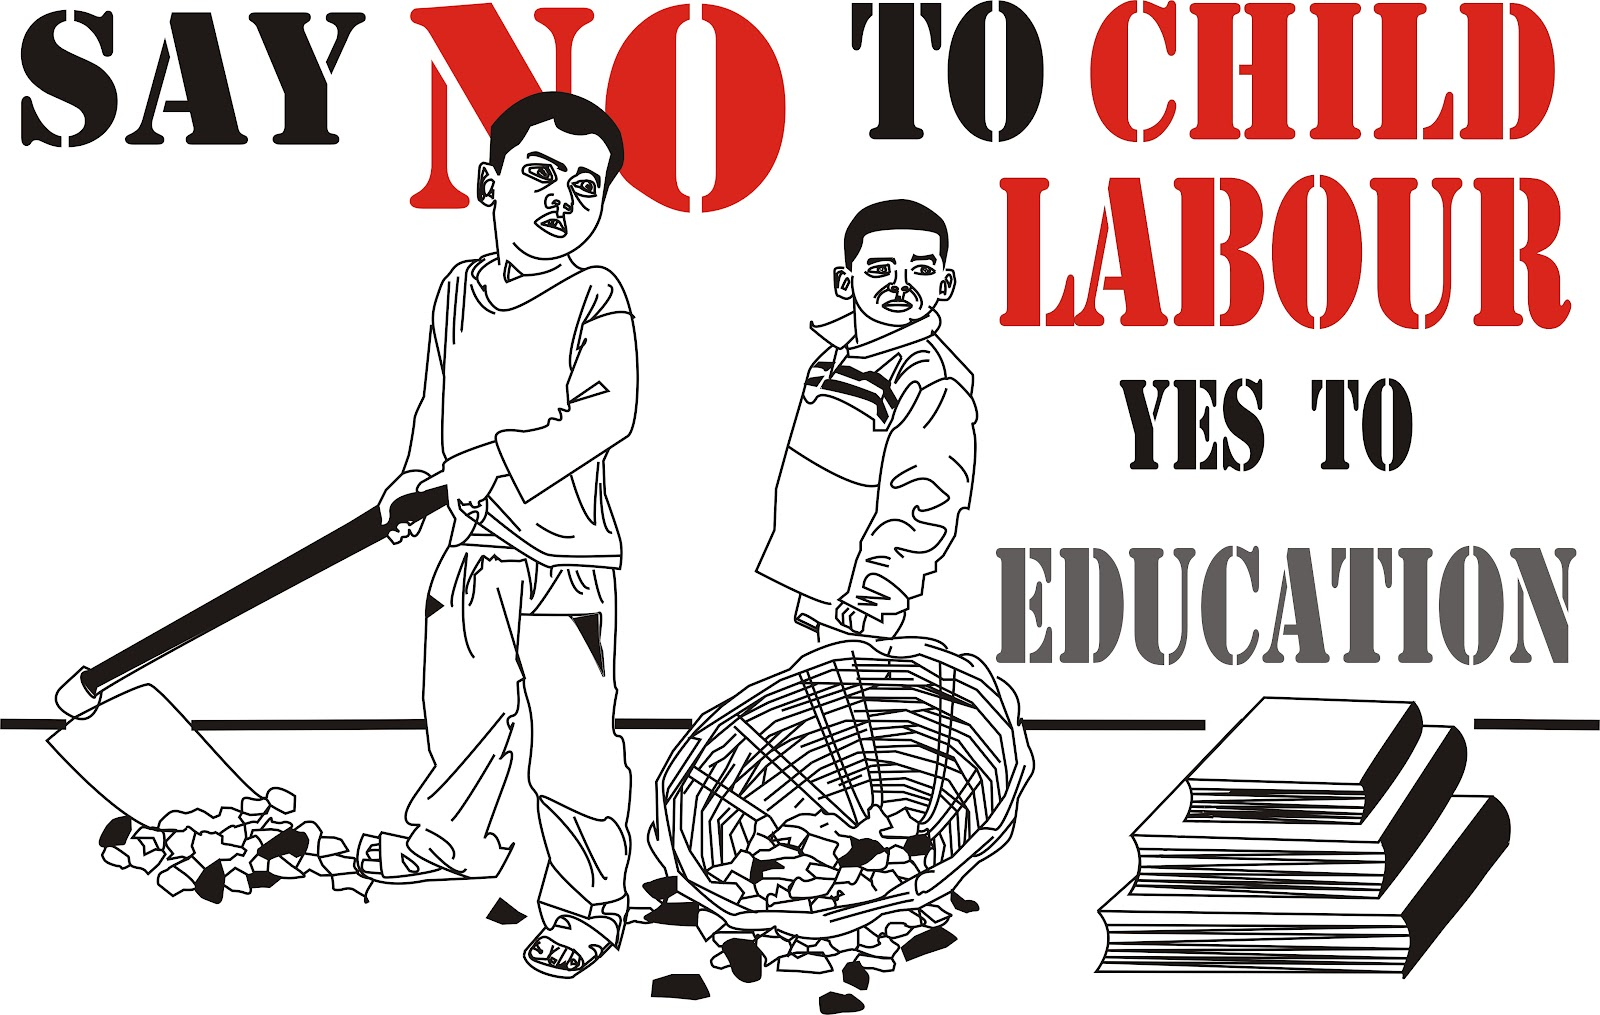 PREVENTION OF CHILD LABOR: WHAT LEGAL MECHANISMS WERE ELABORATED TO PROTECT AND DETECT CHILD LABOR?